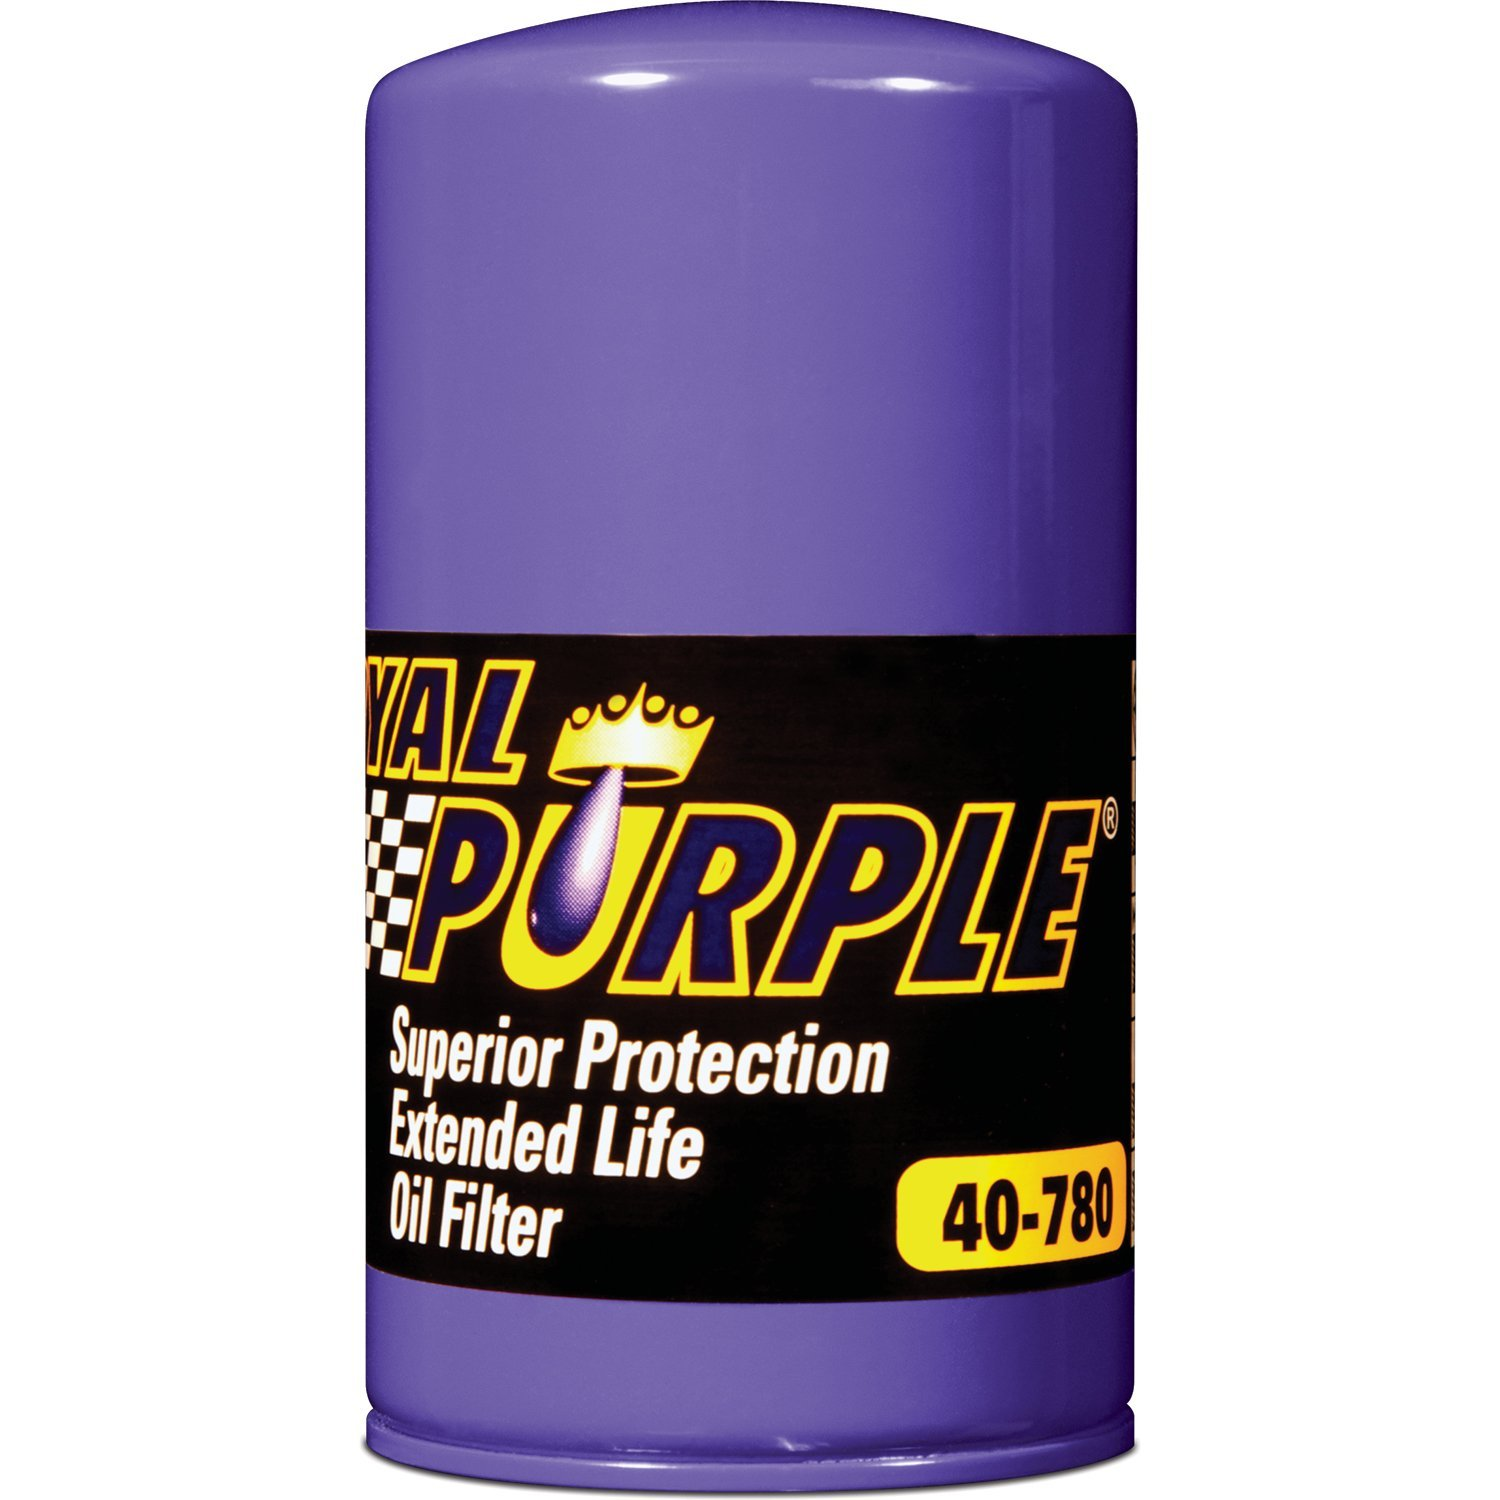 Royal Purple 40-780 Oil Filter